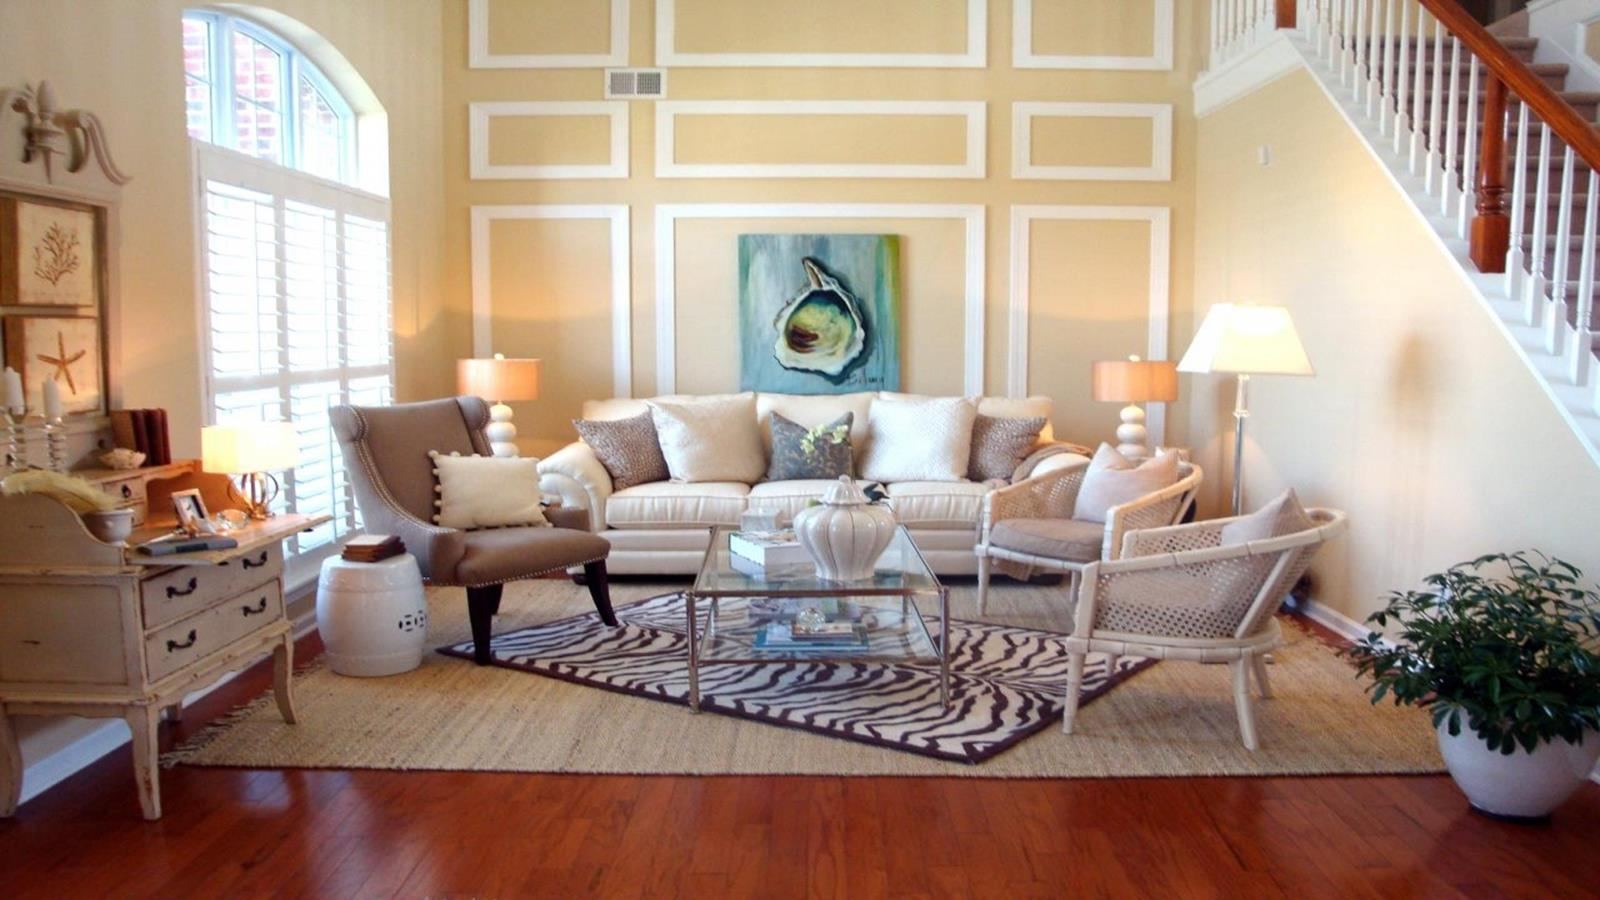 City Chic Living Room Decorating Ideas On a Budget 29